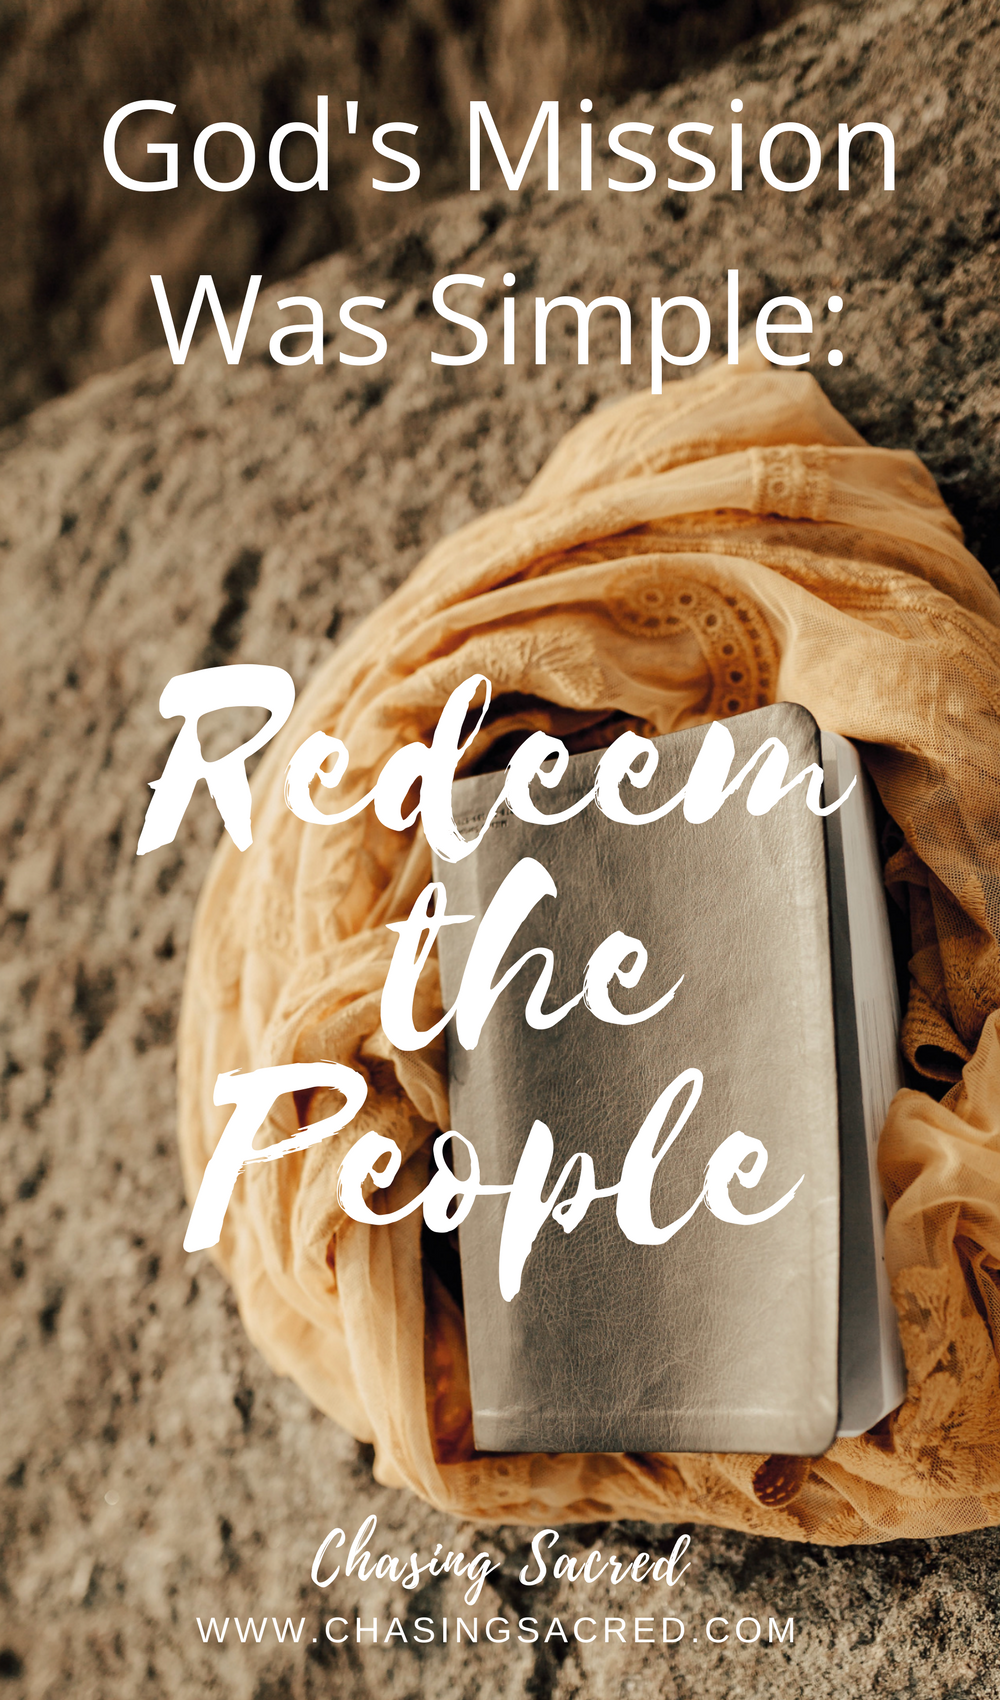 God's Mission was Simple: Redeem the People